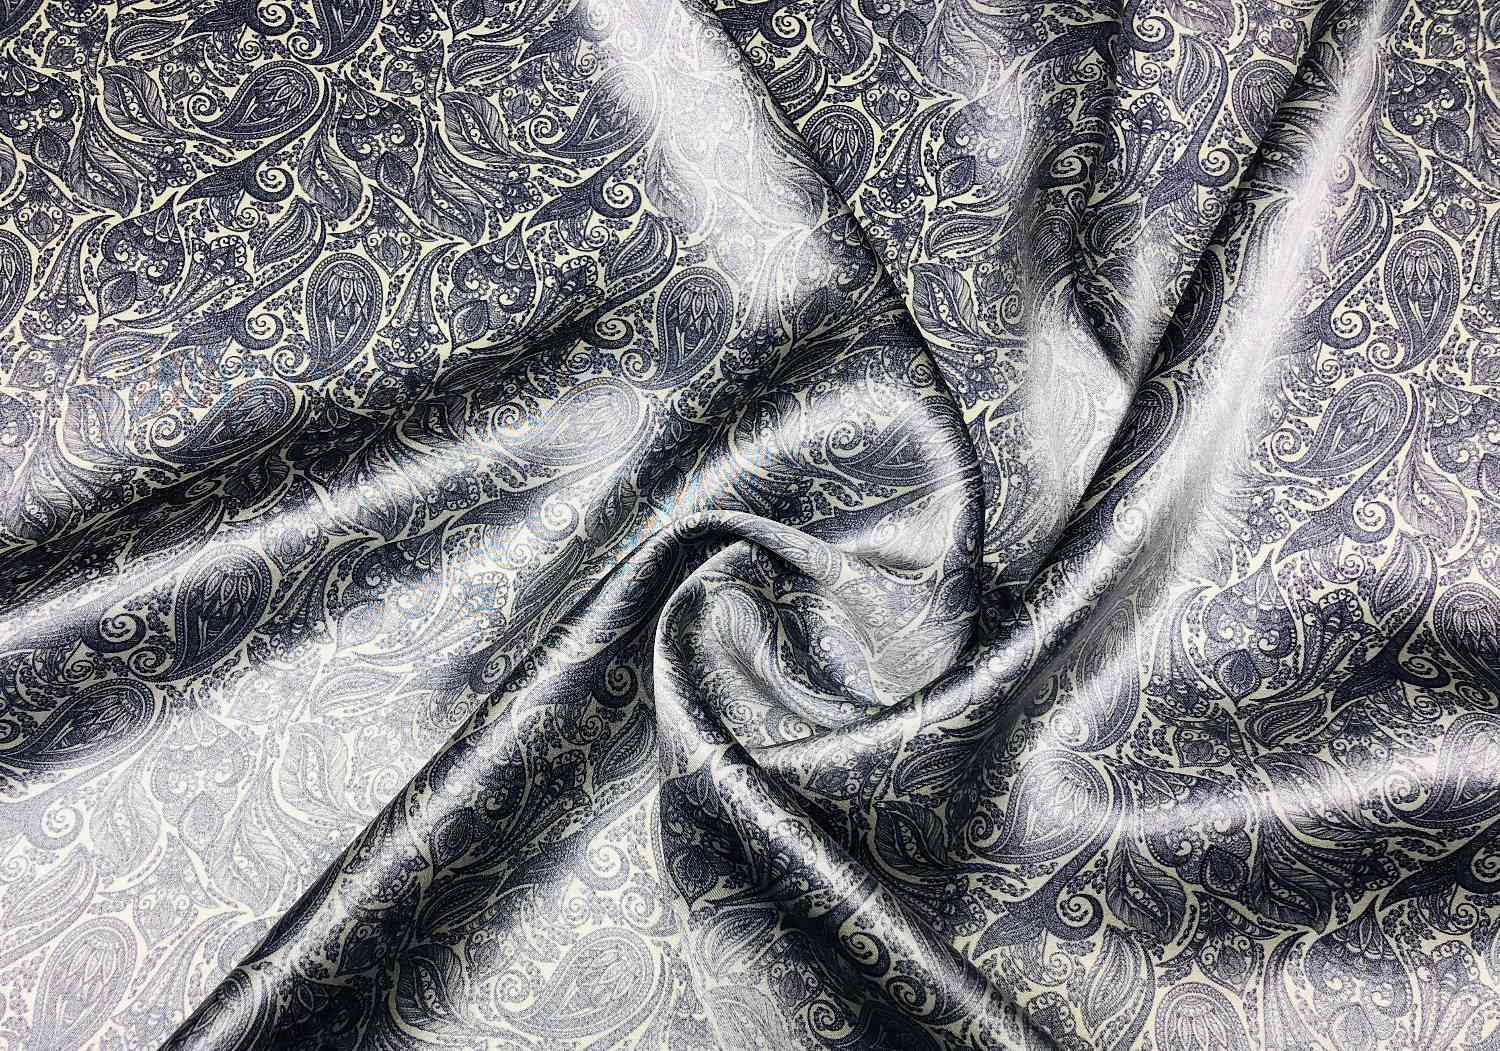 Printed Fabrics - silk satin 16mm - SILK SATIN 16MM Silk